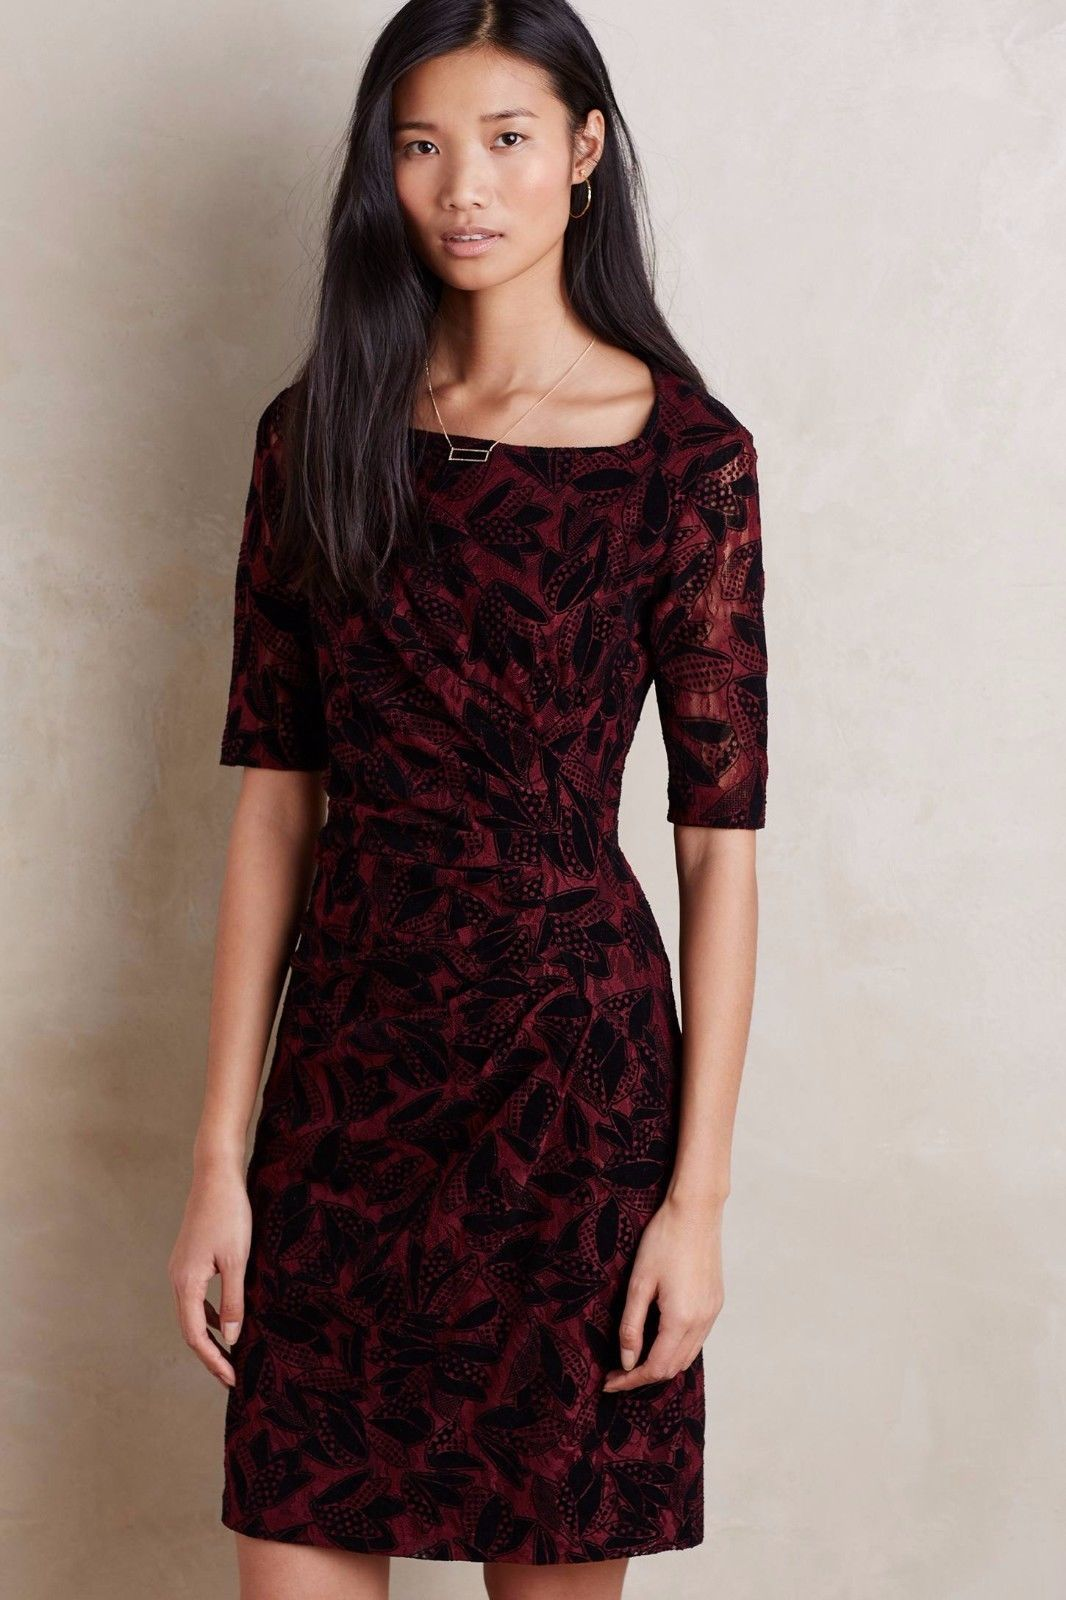 Primary image for NWT ANTHROPOLOGIE ELORN WINE DRESS by MAEVE 4